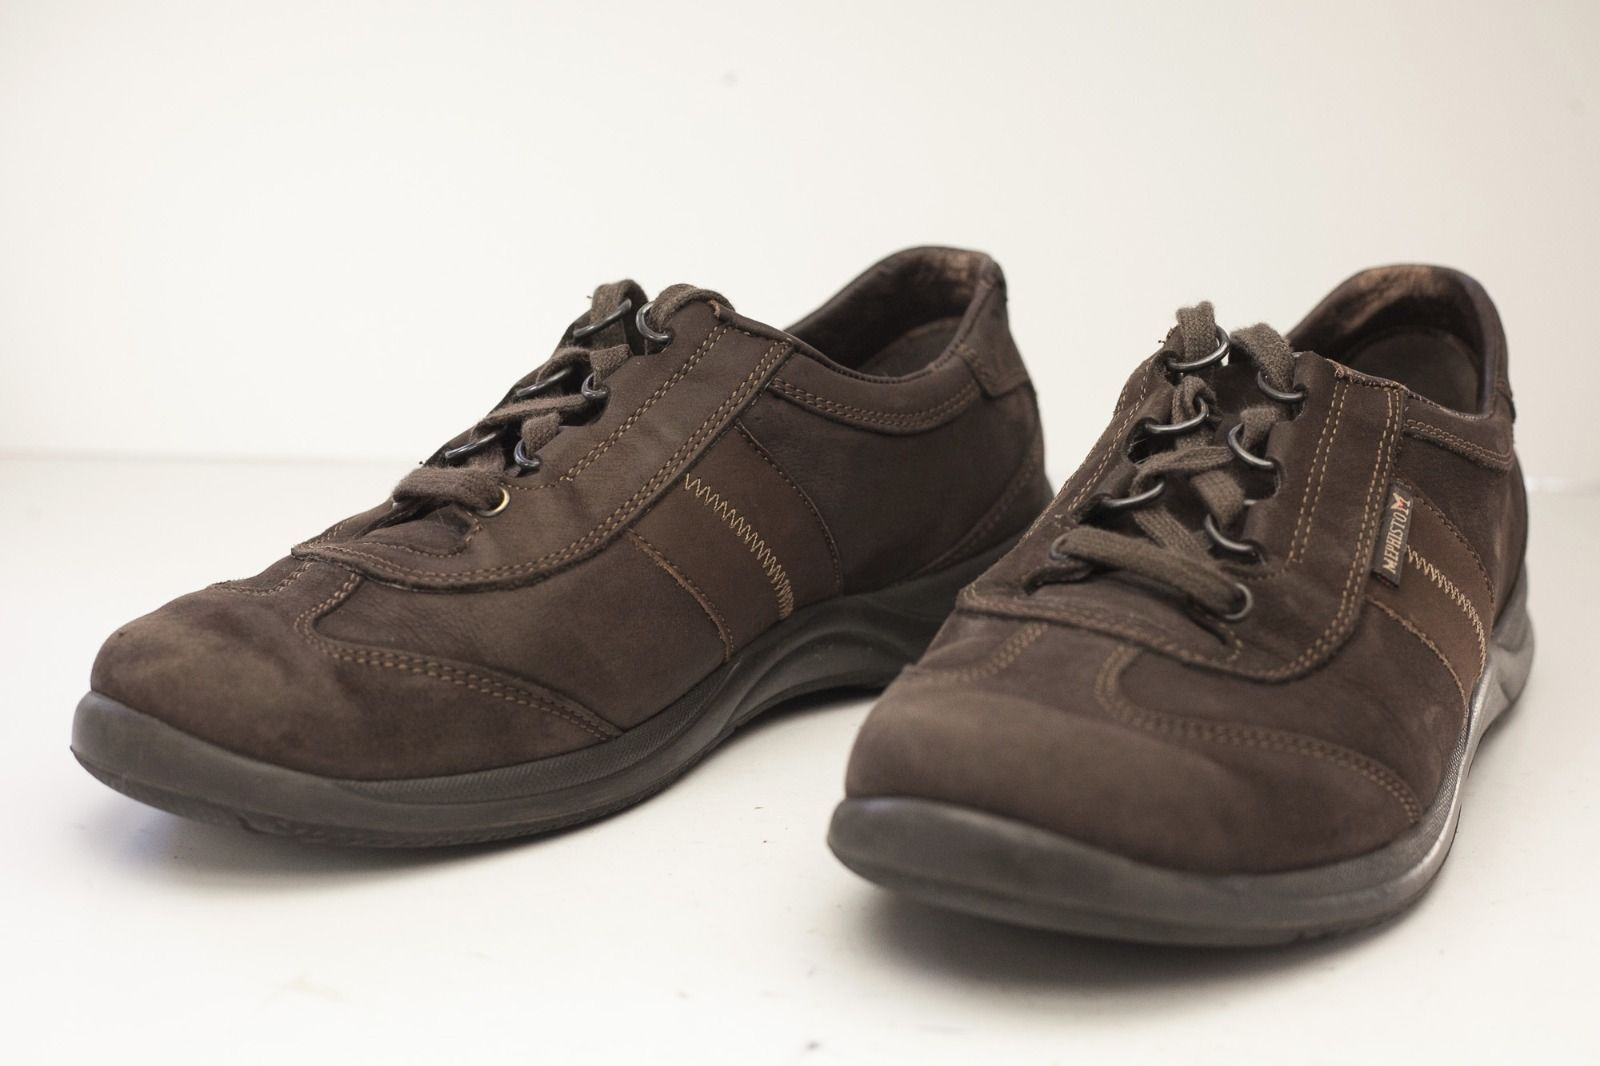 d1cf2baee4 Mephisto Laser 7.5 Brown Women's Lace Up and 50 similar items. 57